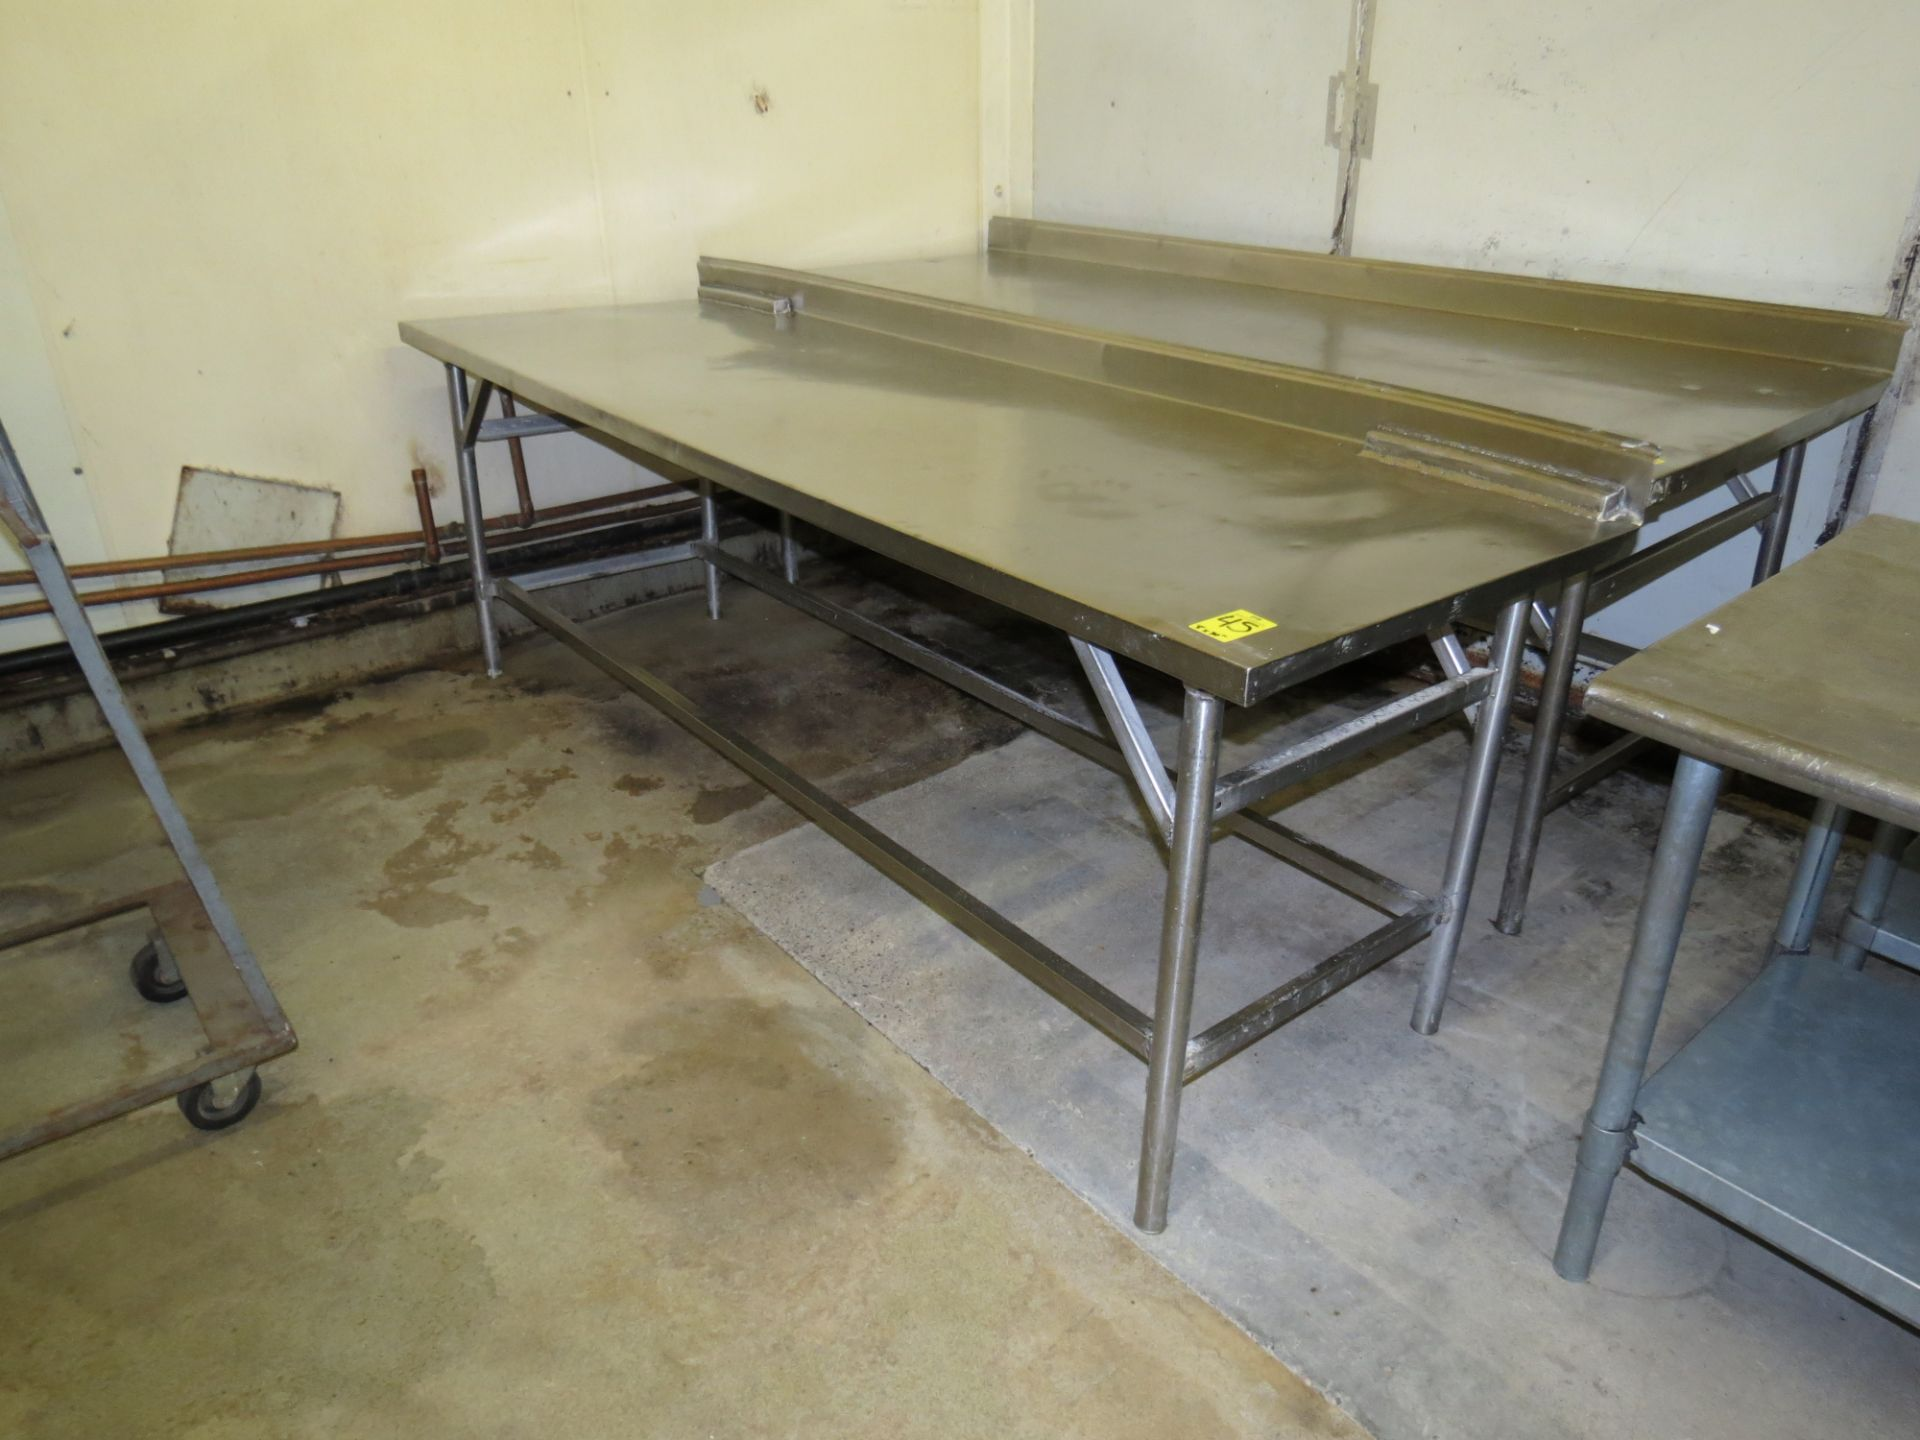 Lot 45 - STAINLESS STEEL TABLE 8 ' X 30""